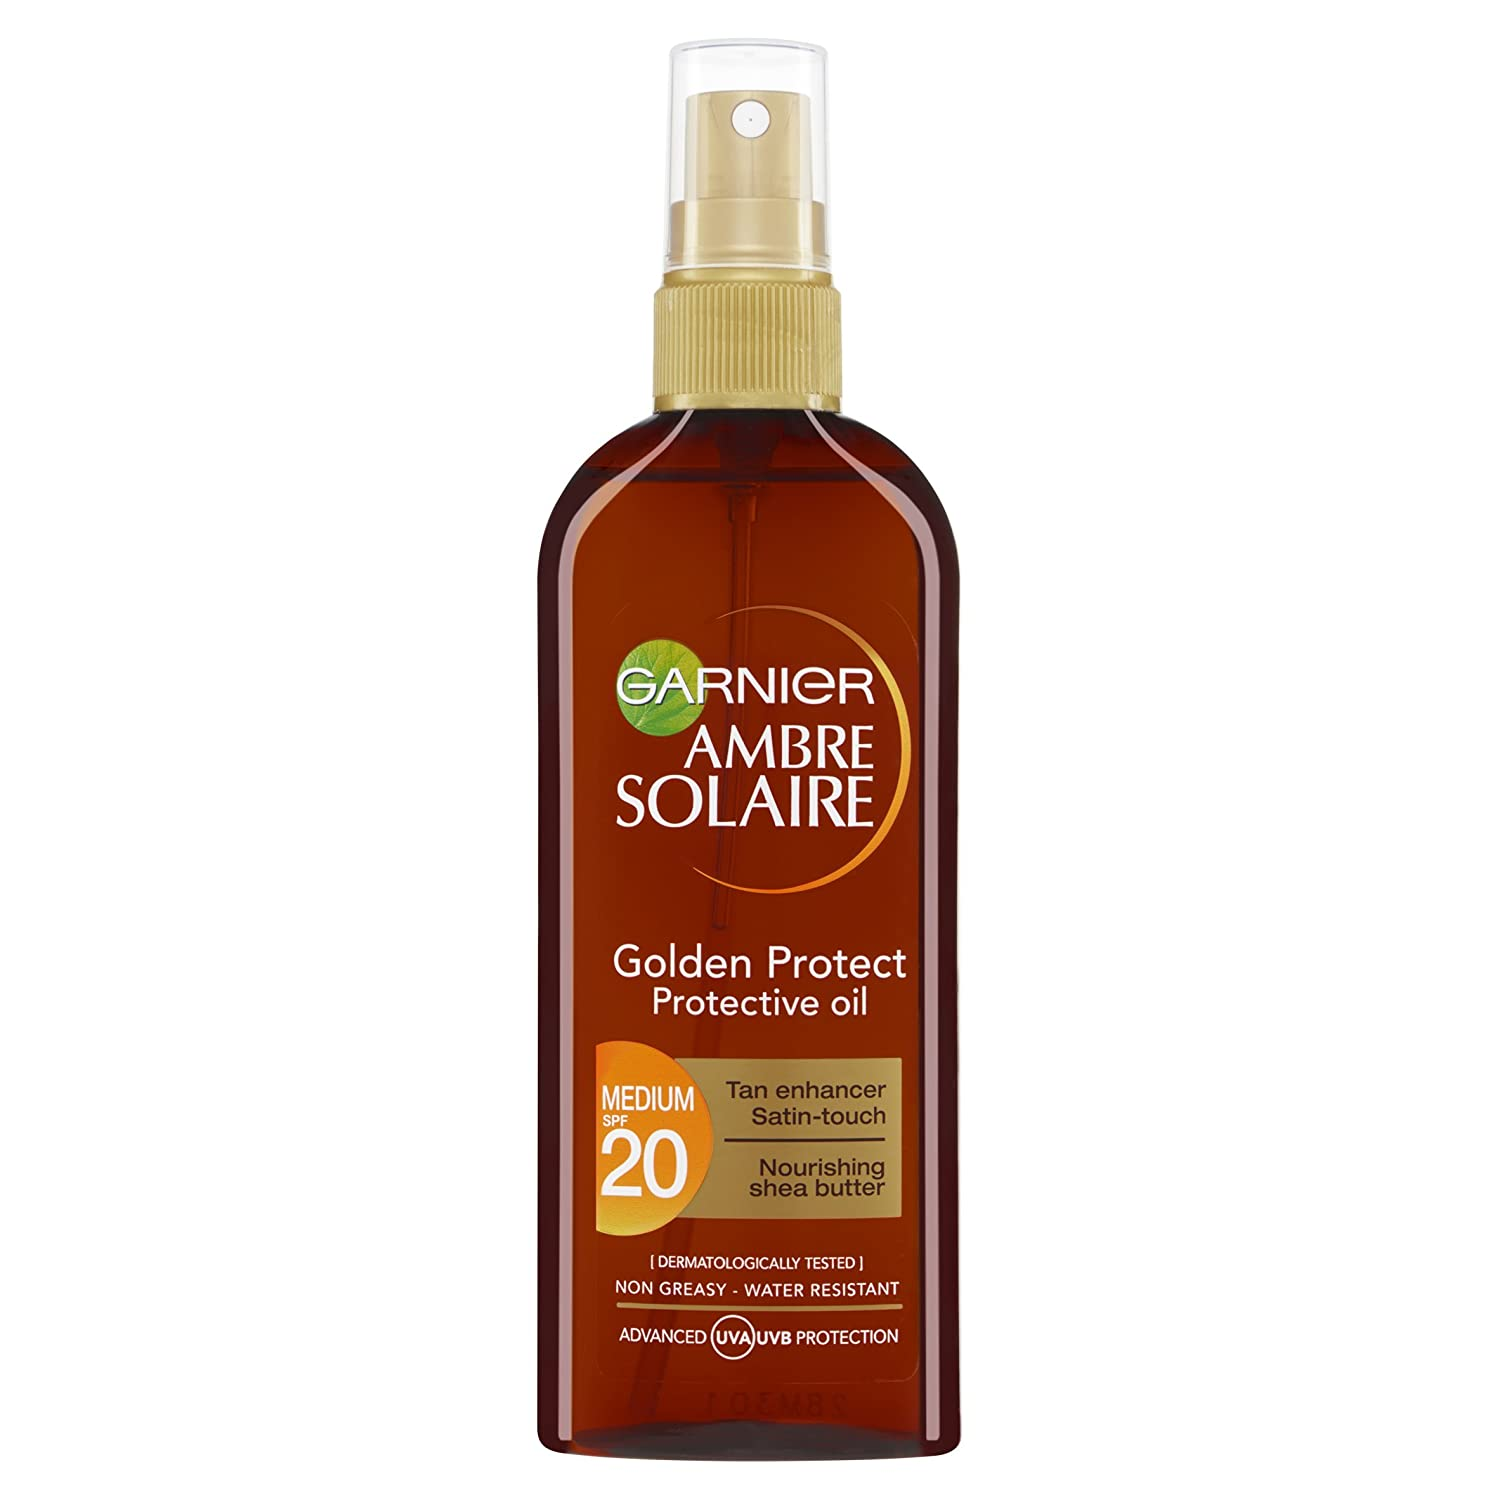 Ambre Solaire Golden Protect Sun Oil SPF20 150ml Garnier/Maybelline NY 3600540873101